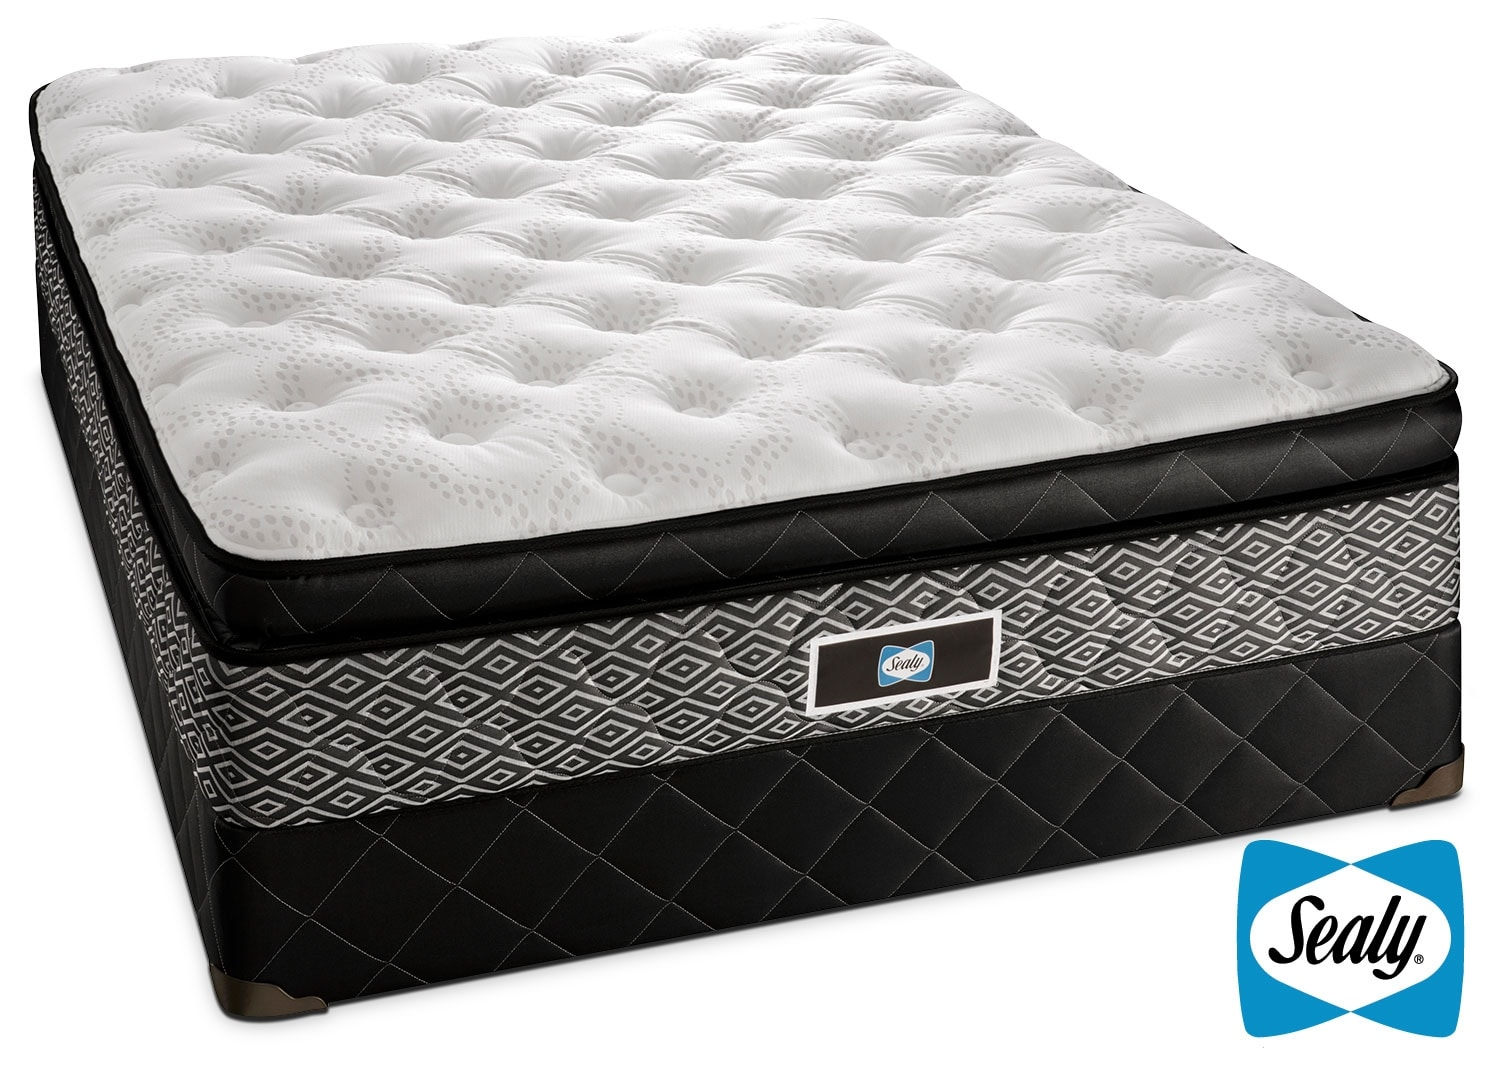 Sealy echo plush queen mattress boxspring set leon 39 s Queen mattress sizes